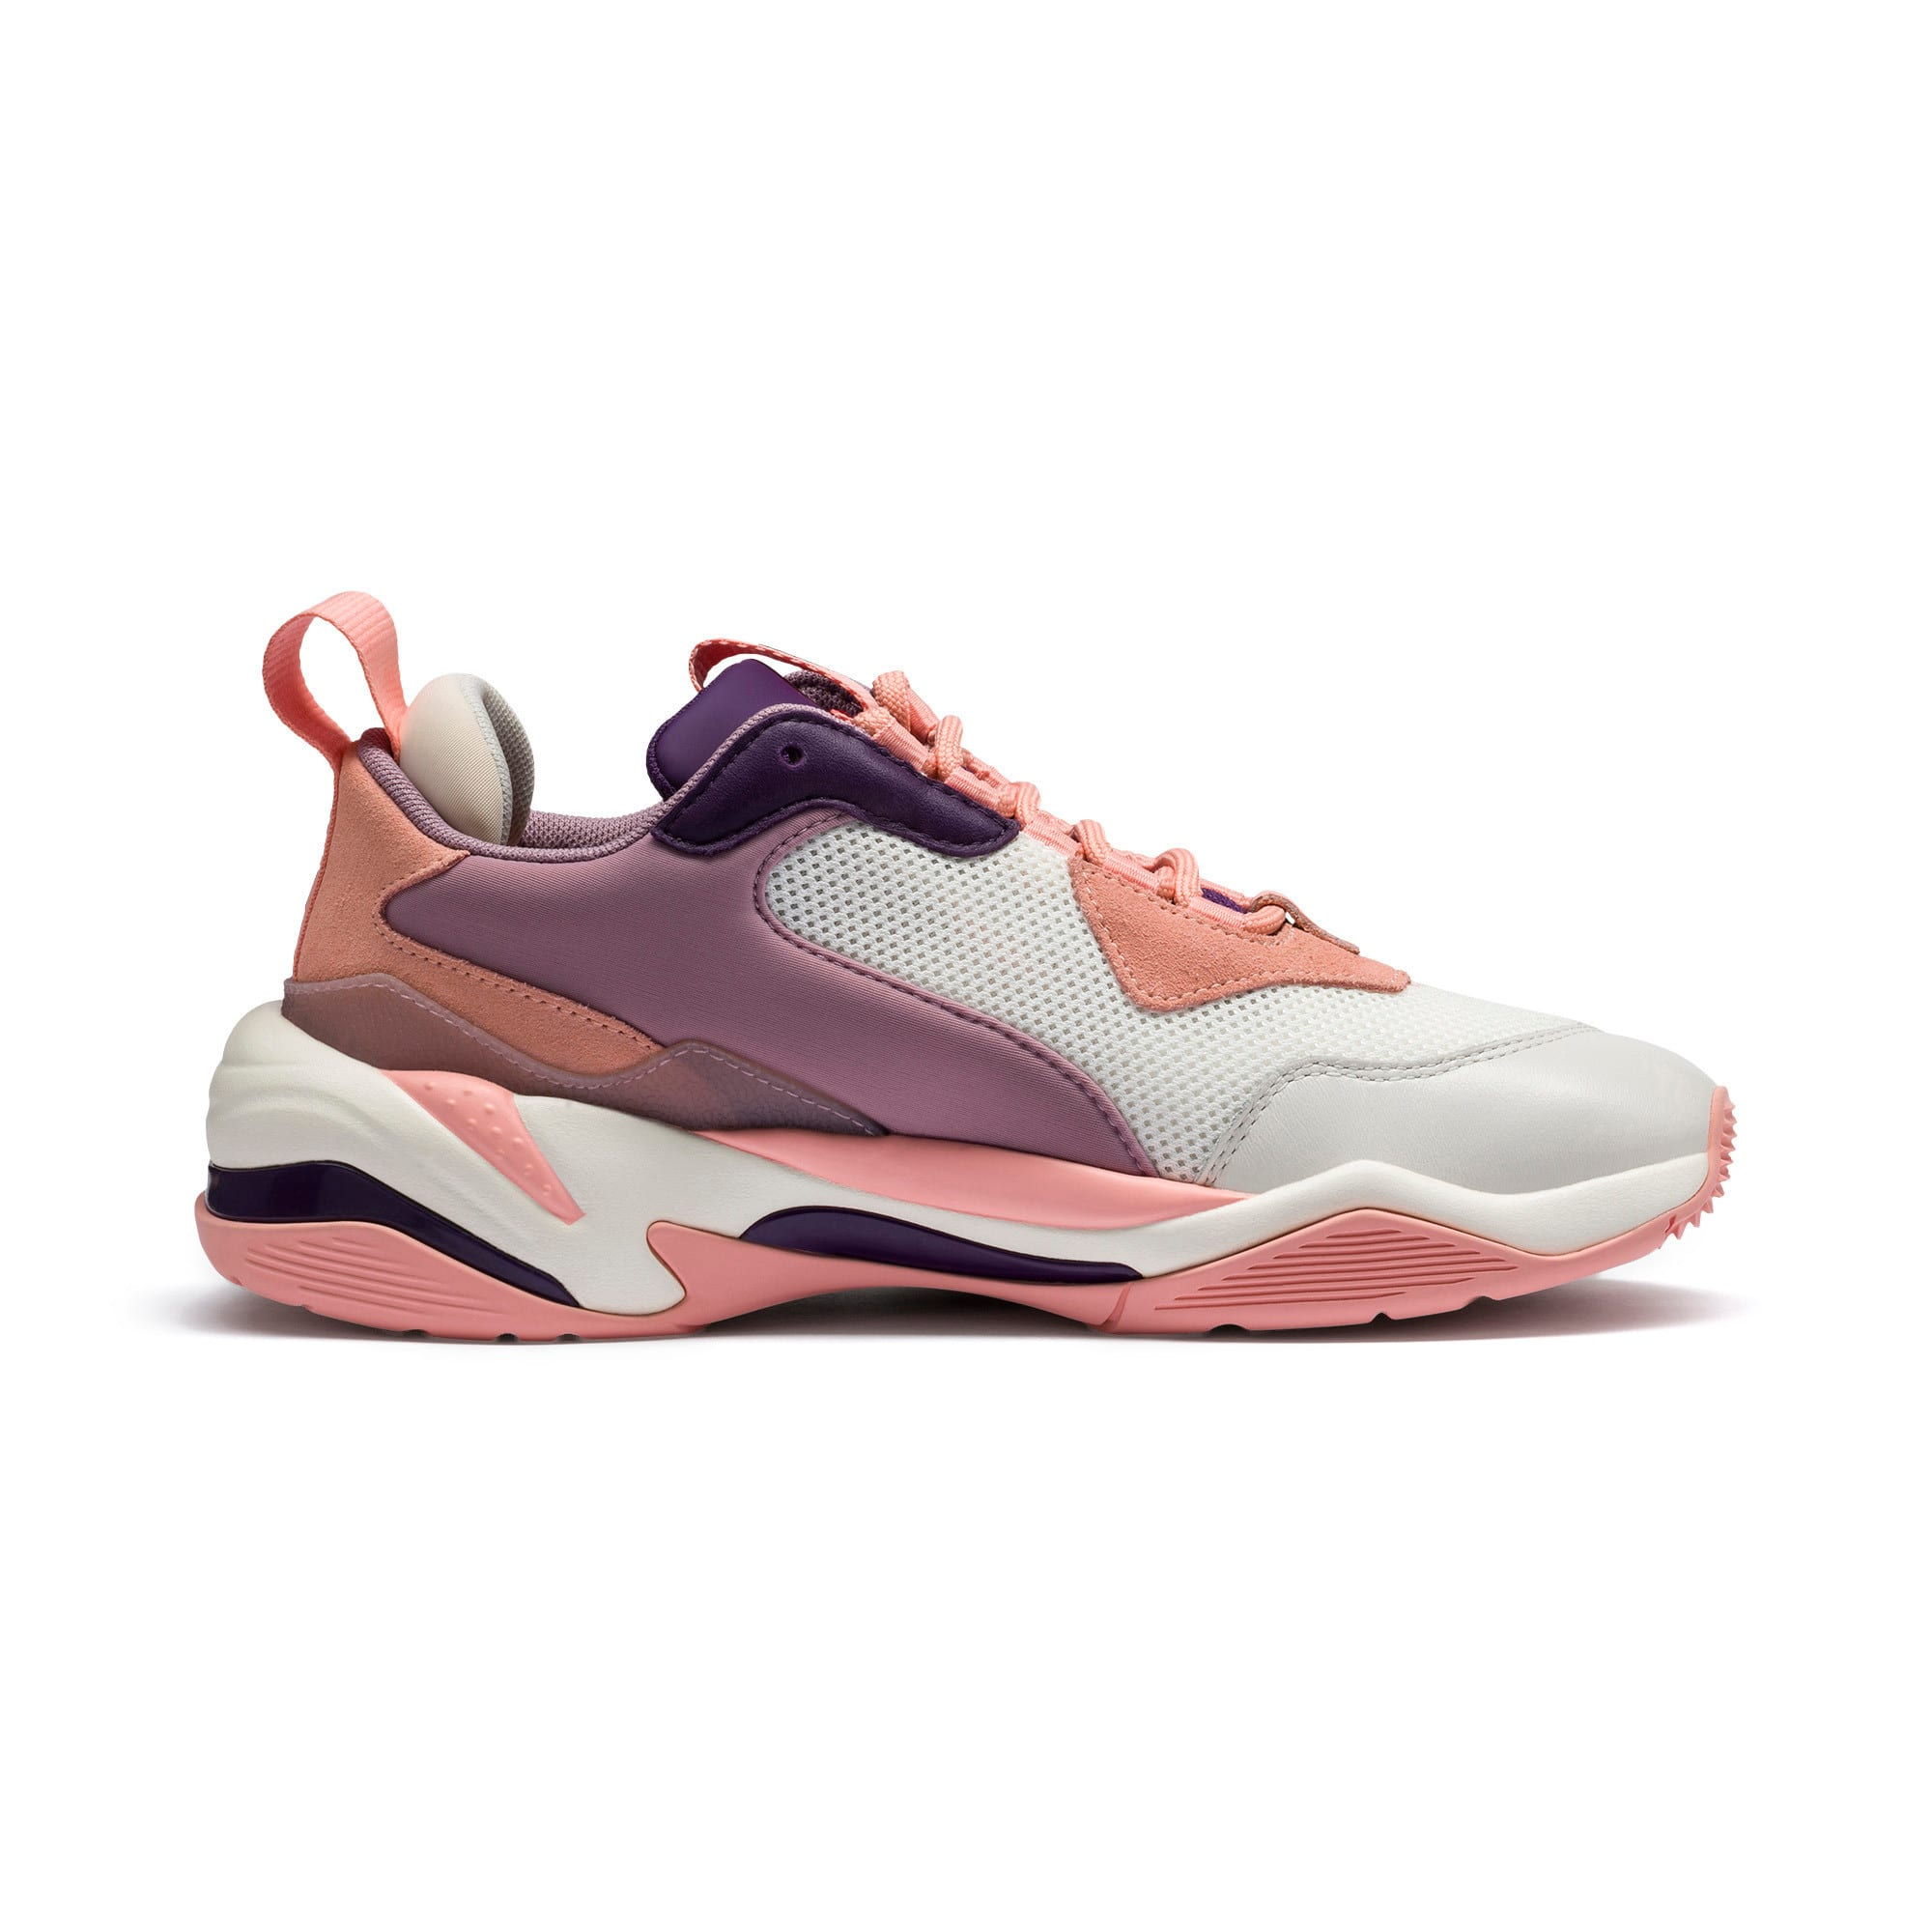 Thumbnail 5 of Thunder Spectra sneakers, Marshmallow-Peach Bud, medium